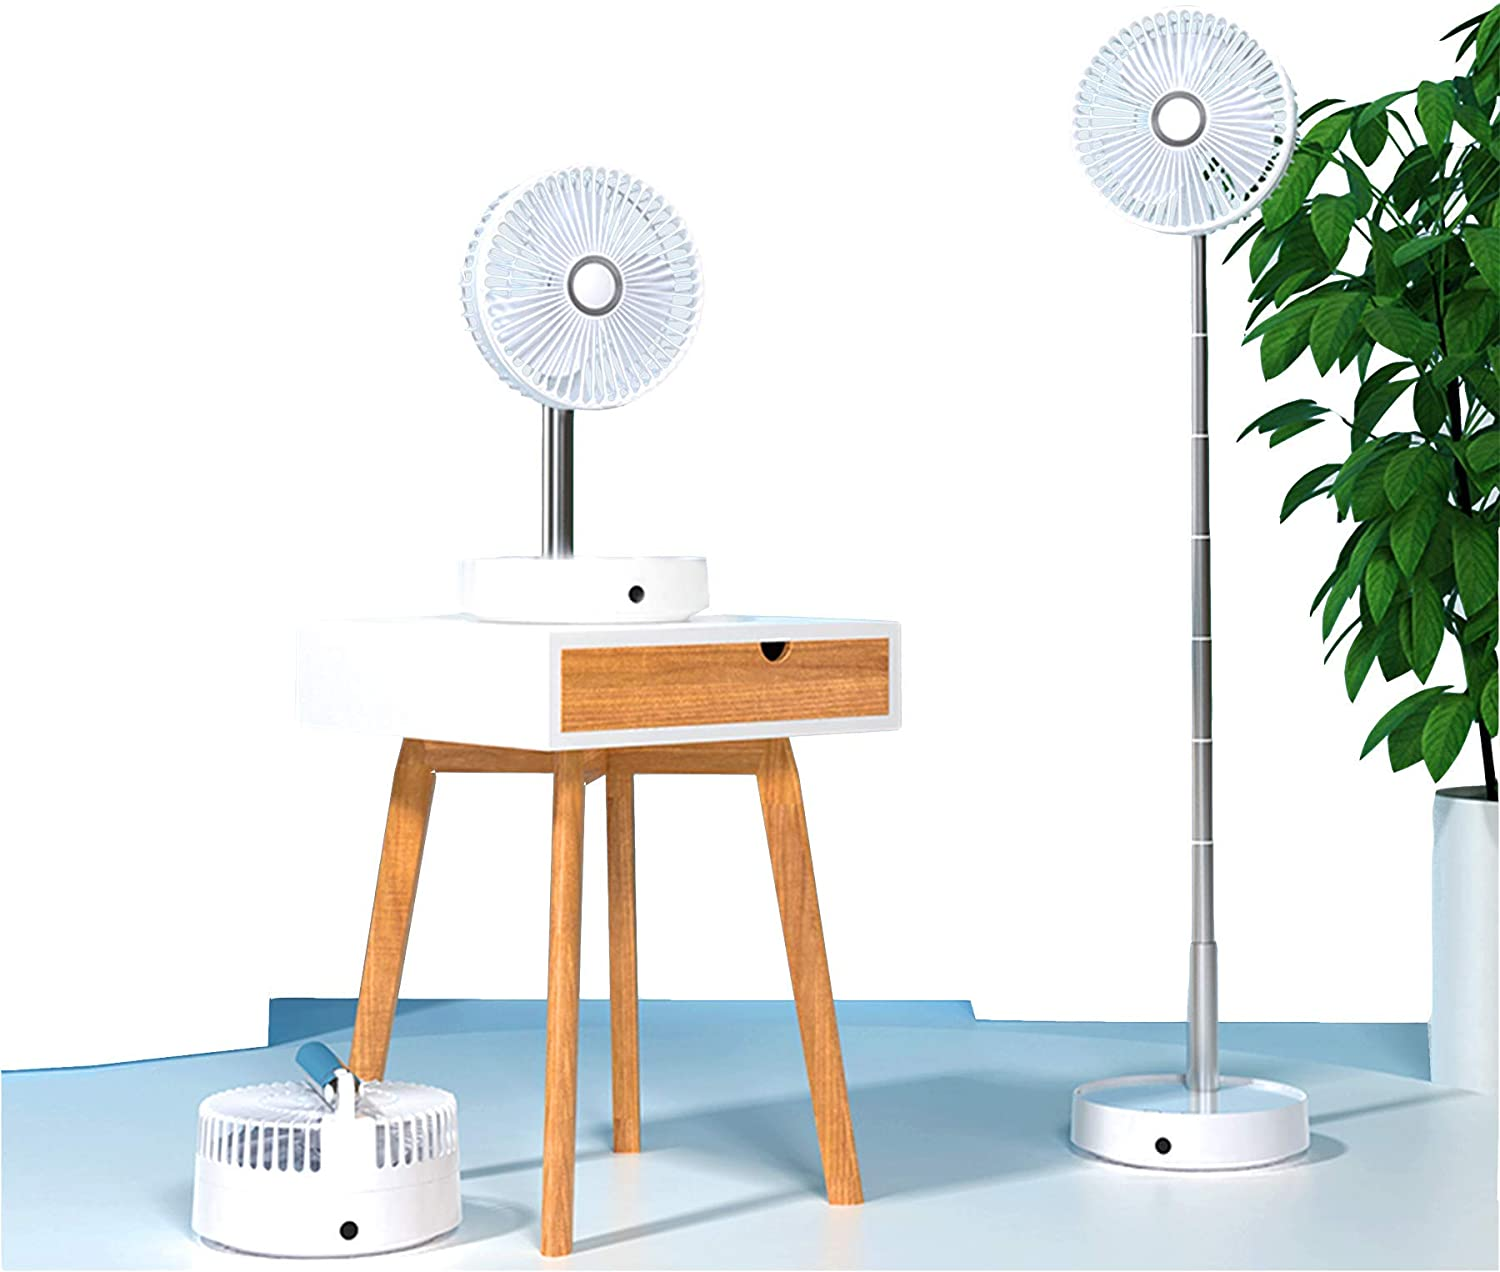 Floor Fan Oscillating Remote Quiet Pedestal Table Desk Portable Personal Standing Foldable Rechargeable USB Operated Powered Battery Mini Smart Air Cooling Conditioner Ventilator Home Office Bedroom